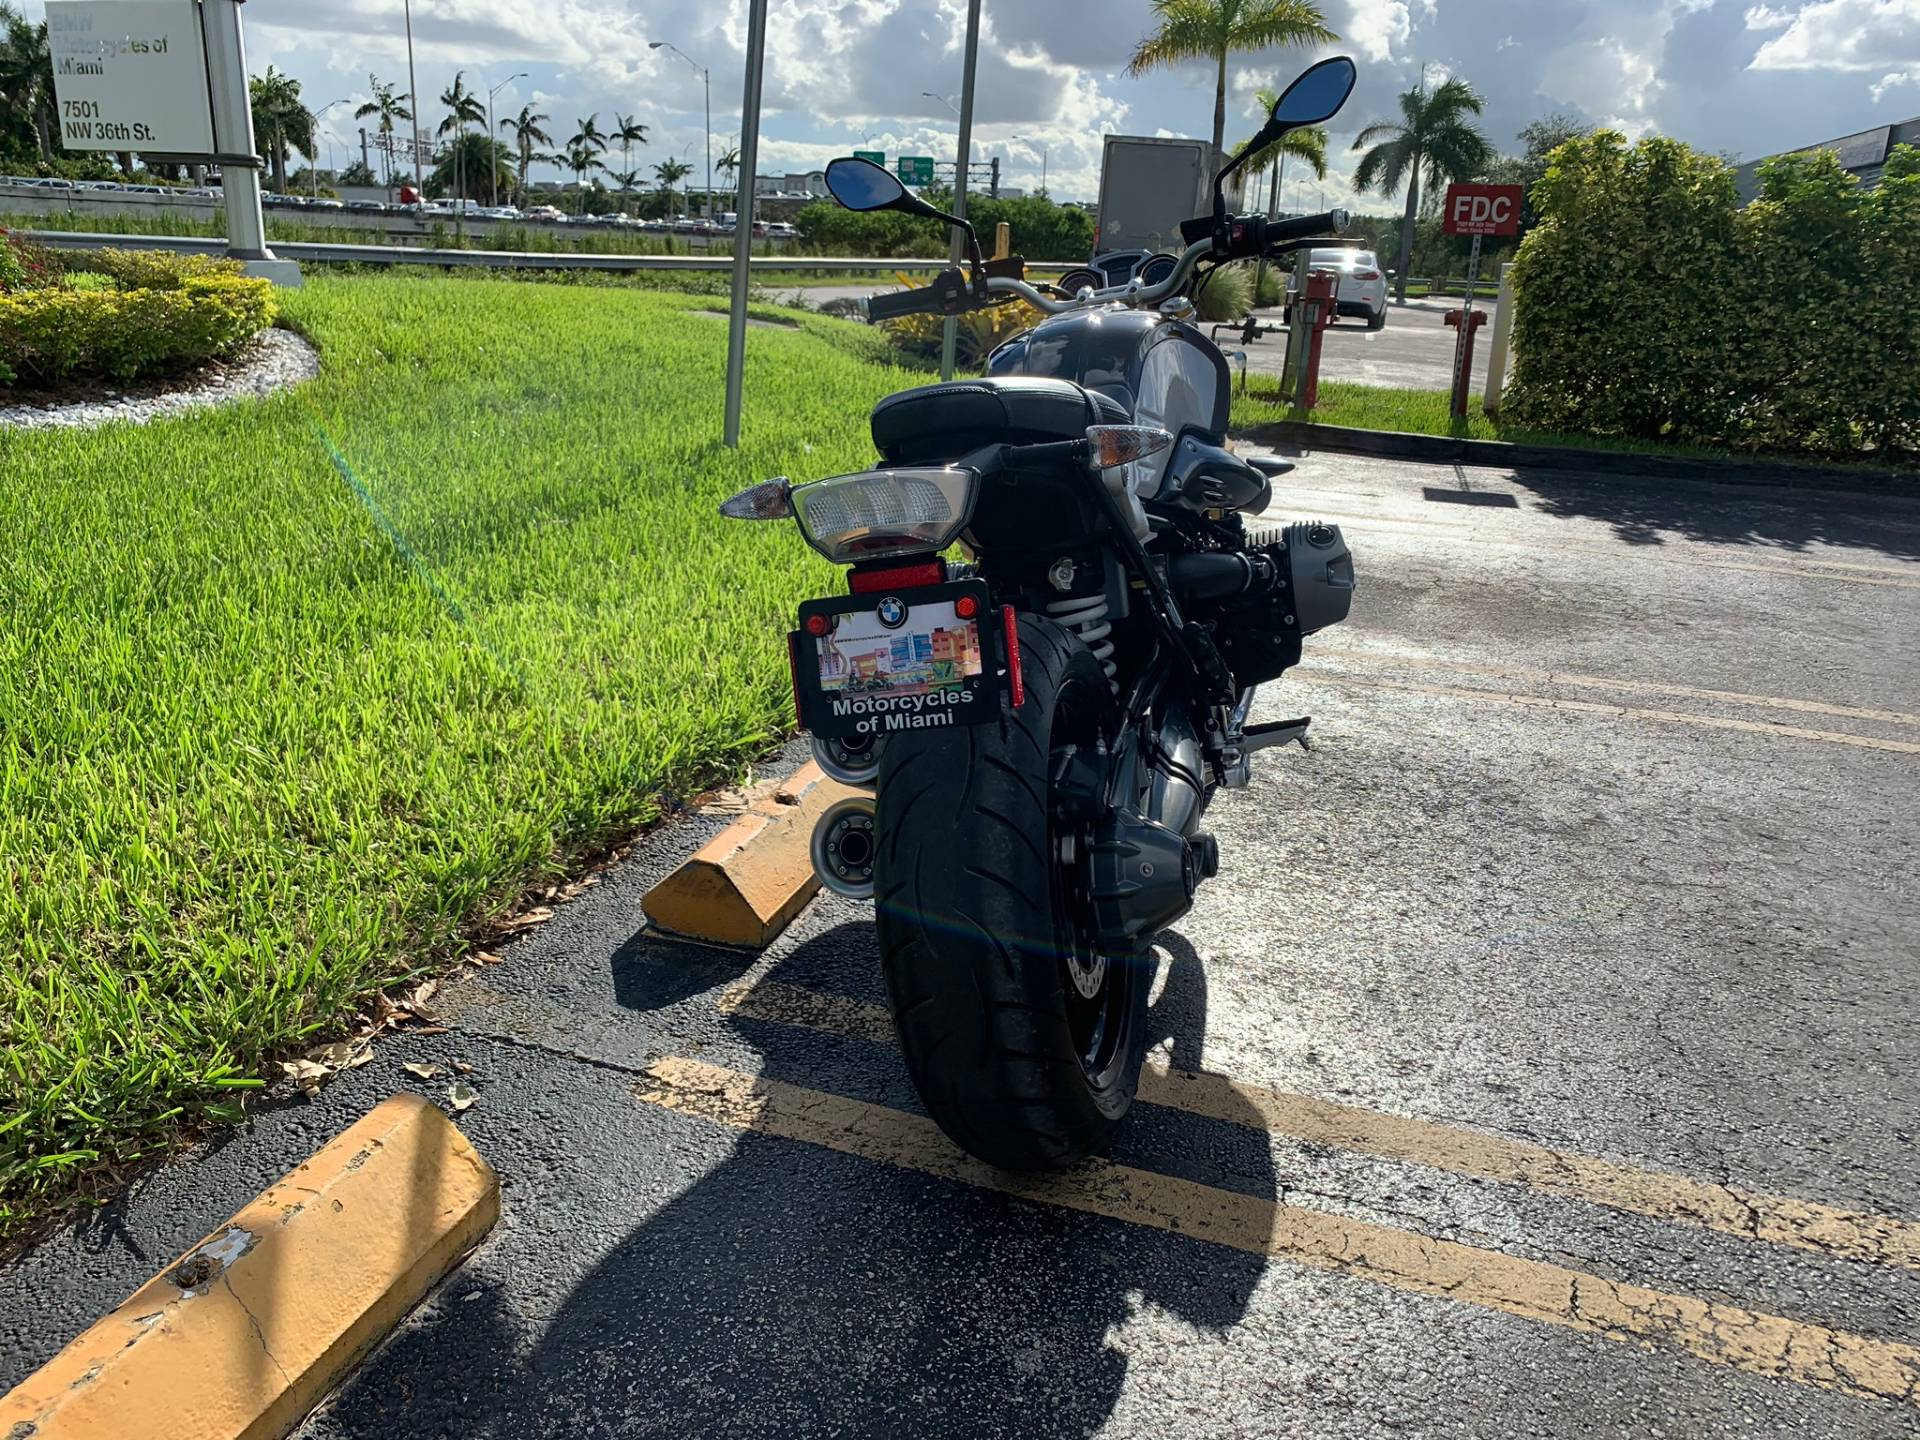 Used 2016 BMW R NineT for sale, BMW for sale, BMW Motorcycle Café Racer, new BMW Caffe, Cafe Racer, BMW. BMW Motorcycles of Miami, Motorcycles of Miami, Motorcycles Miami, New Motorcycles, Used Motorcycles, pre-owned. #BMWMotorcyclesOfMiami #MotorcyclesOfMiami. - Photo 23